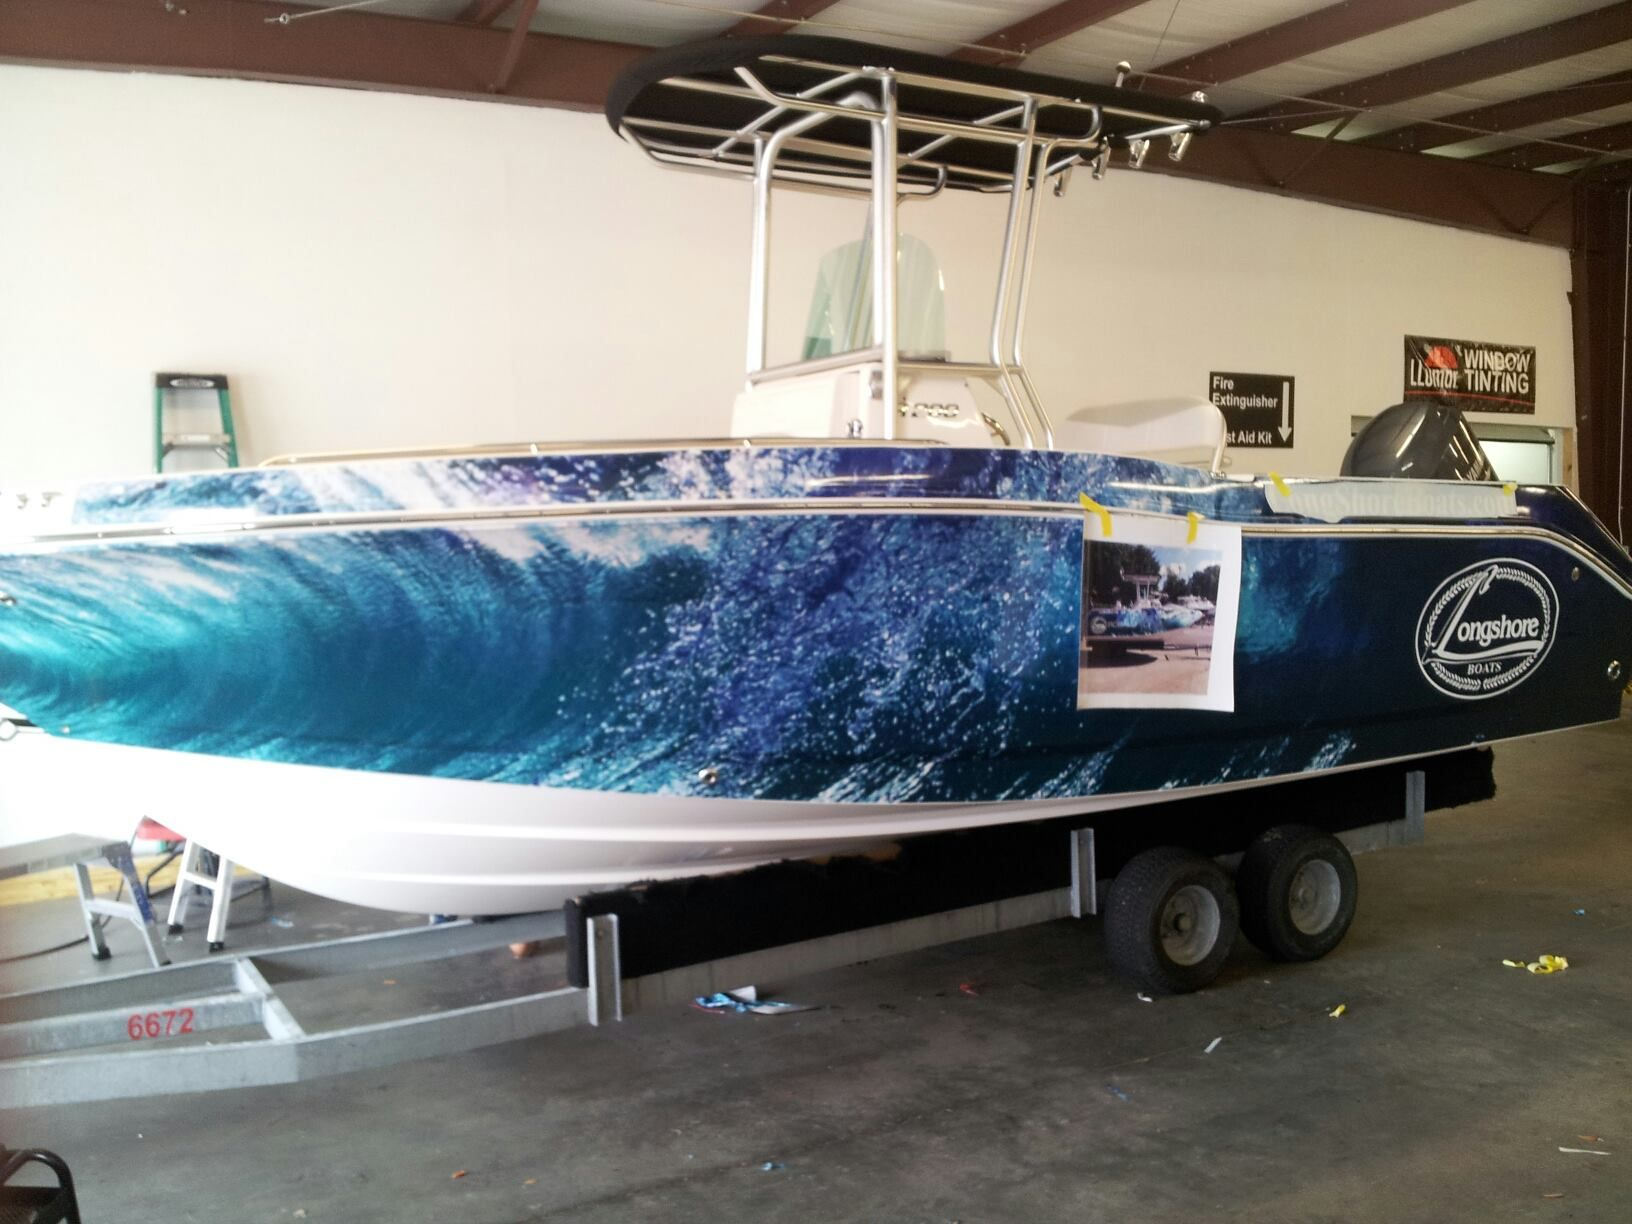 Longshore Robalo Boat Wrap In Progress By Pleasant Details CAR - Sporting boat decalsbest boat wraps custom vinyl images on pinterest boat wraps